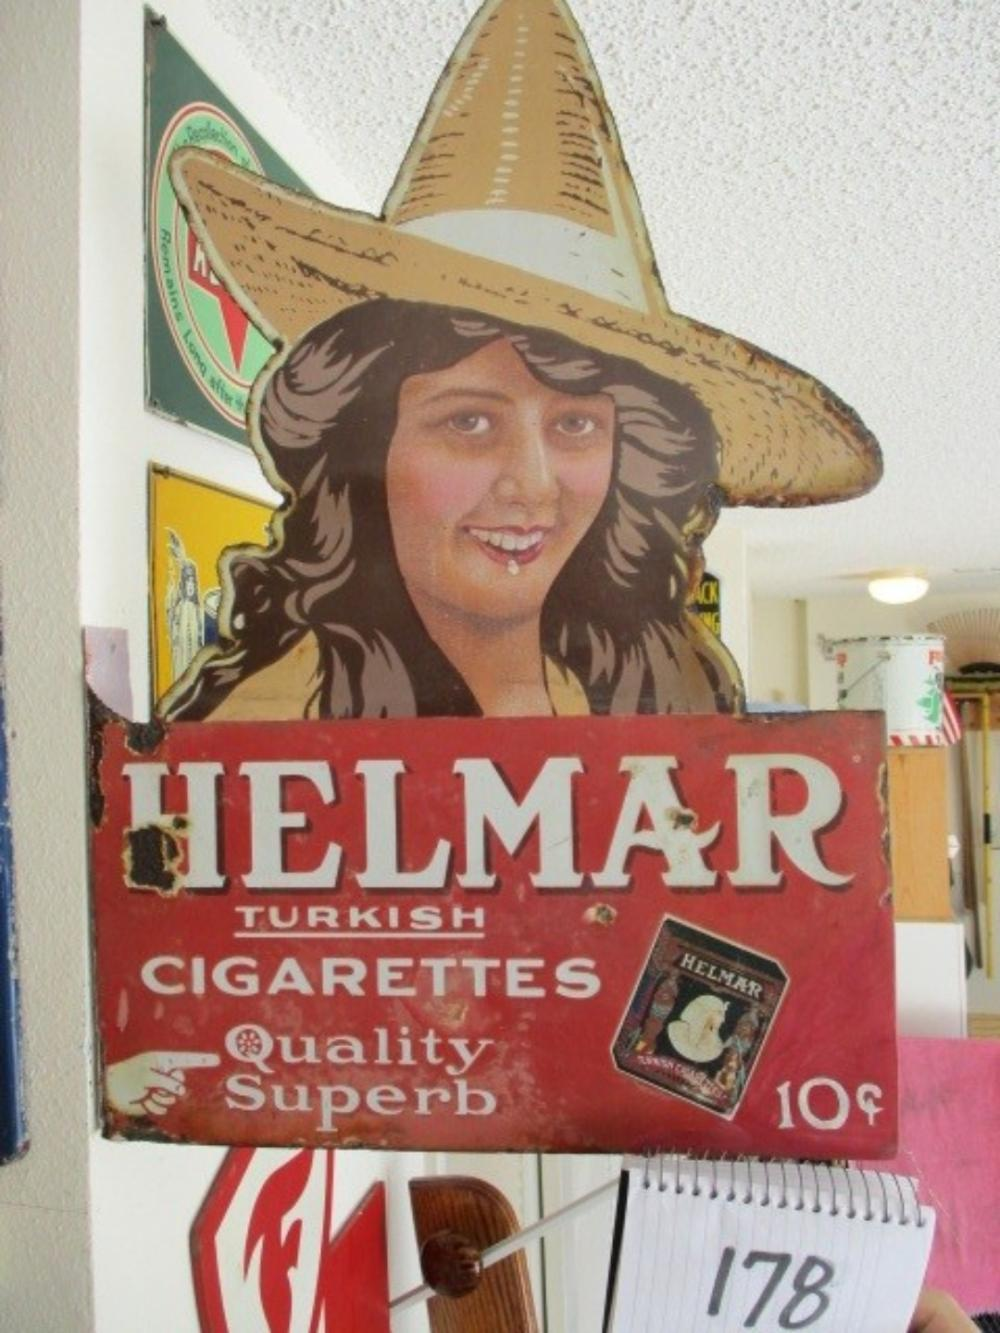 "Helmar Turkish Cigarettes Quality Superb Double Sided Diecut Porcelain Sign 23""x16"""